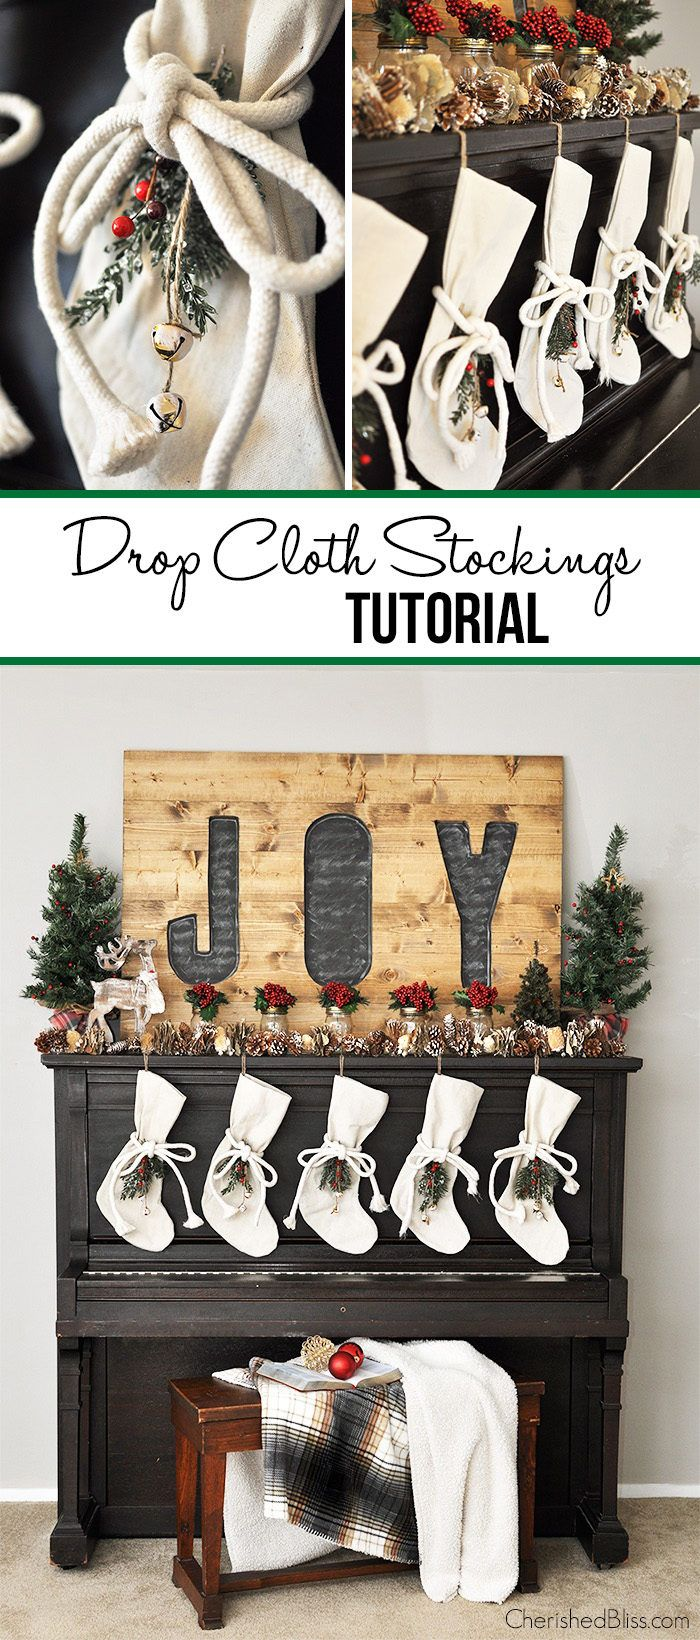 With this tutorial you can easily make your very own Drop Cloth Stockings for a budget friendly option!  What a great addition to your Christmas Decor